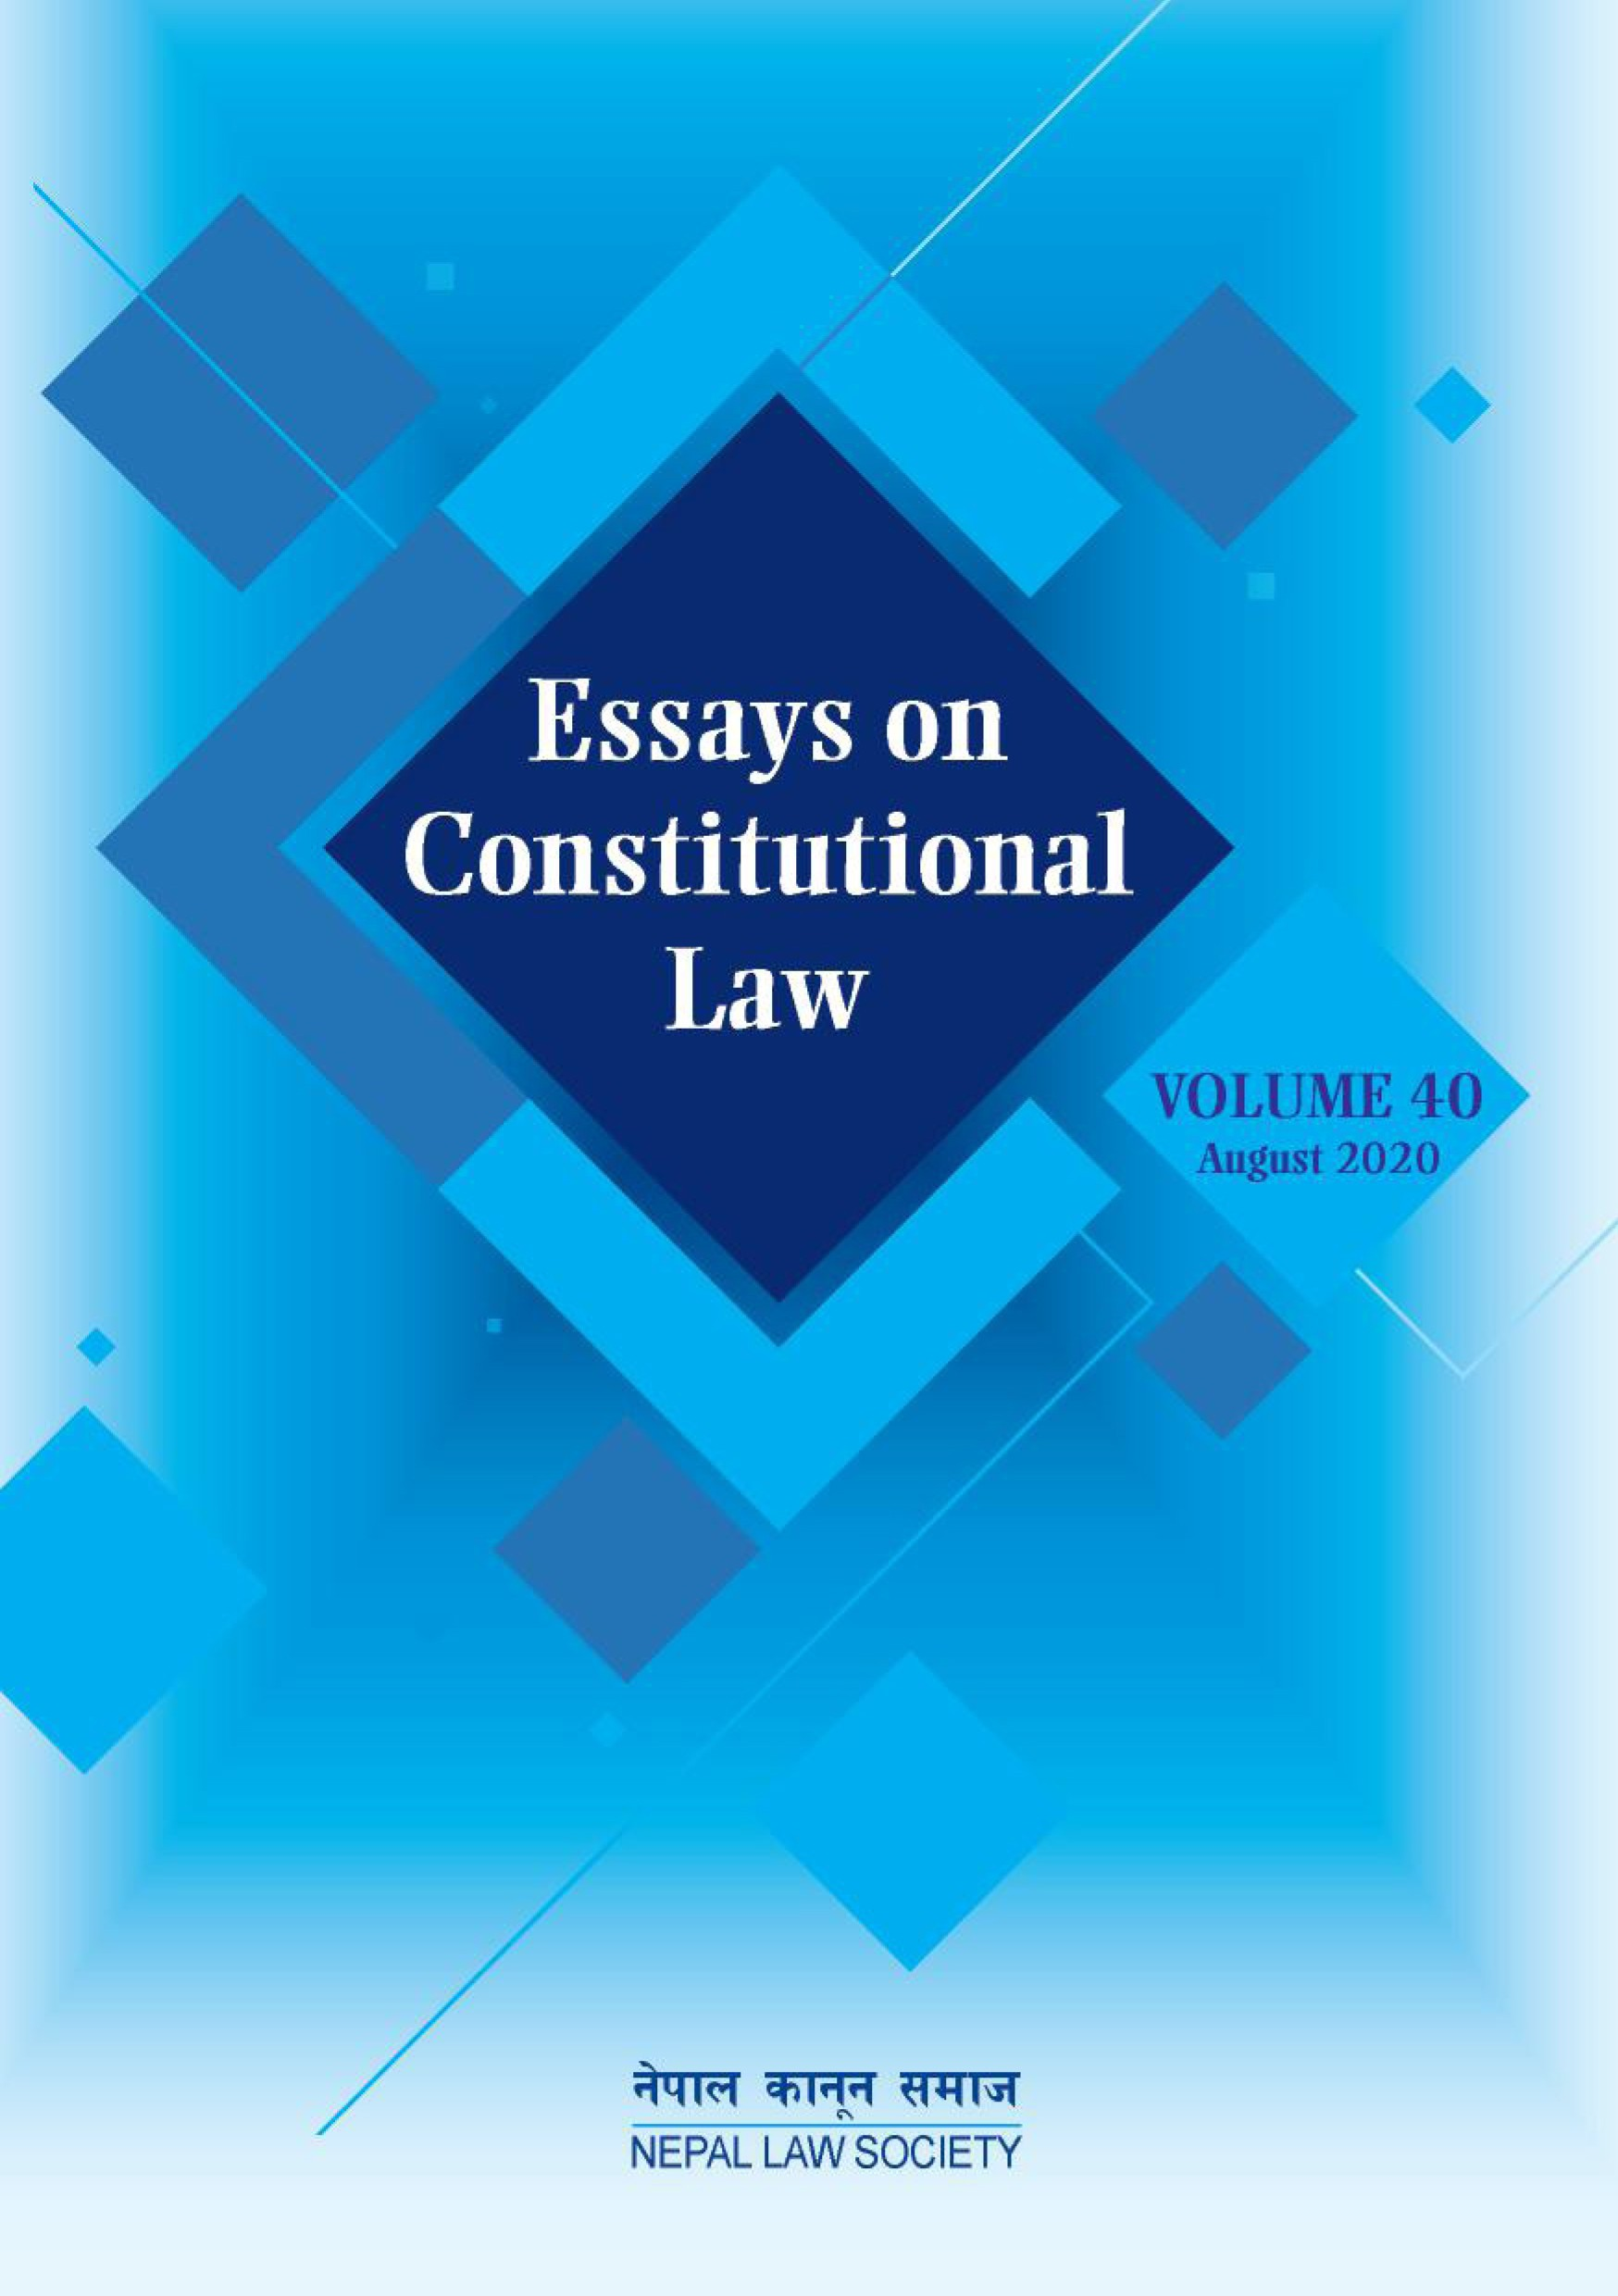 ESSAYS ON CONSTITUTIONAL LAW Vol. 40 (August 2020)